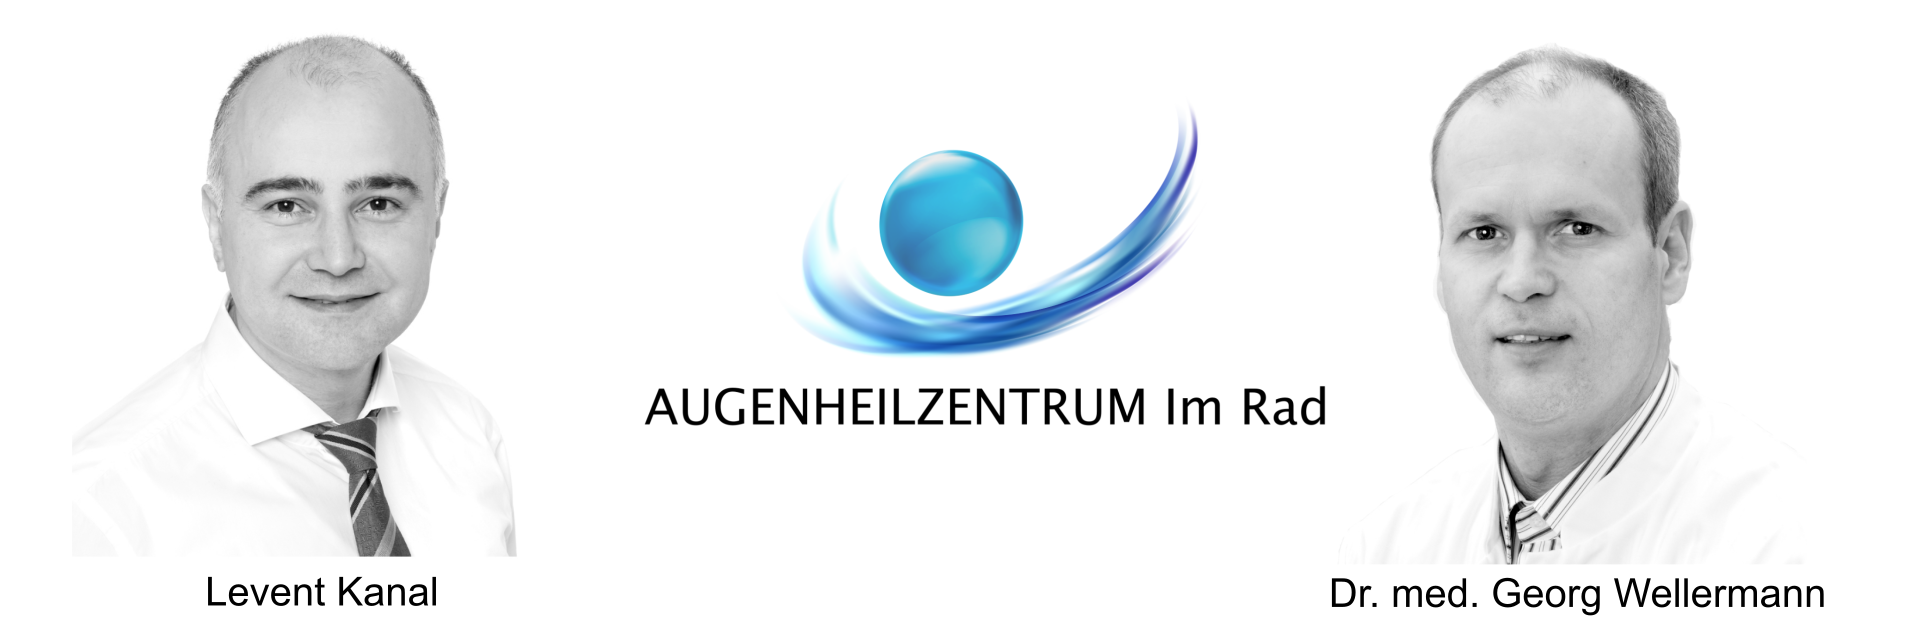 Augenklinik Wiebaden Dr. Levent Kanal - Georg Wellermann